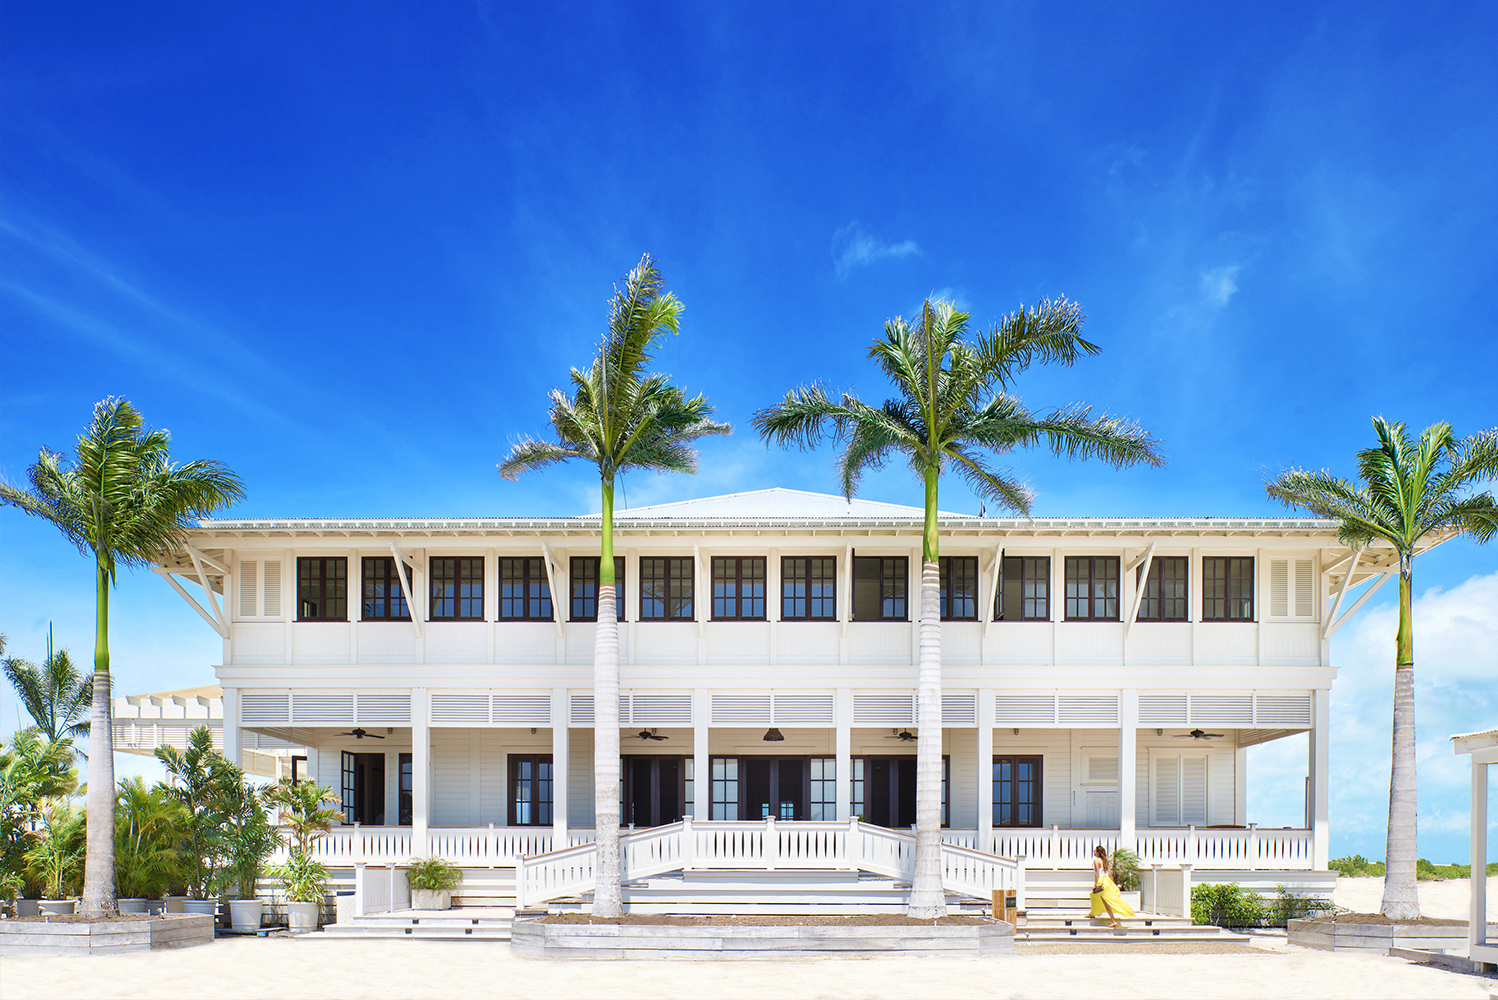 Mahogany Bay Resort & Beach Club, Curio Collection by Hilton opened in Ambergris Caye as Hilton's first property in Belize.